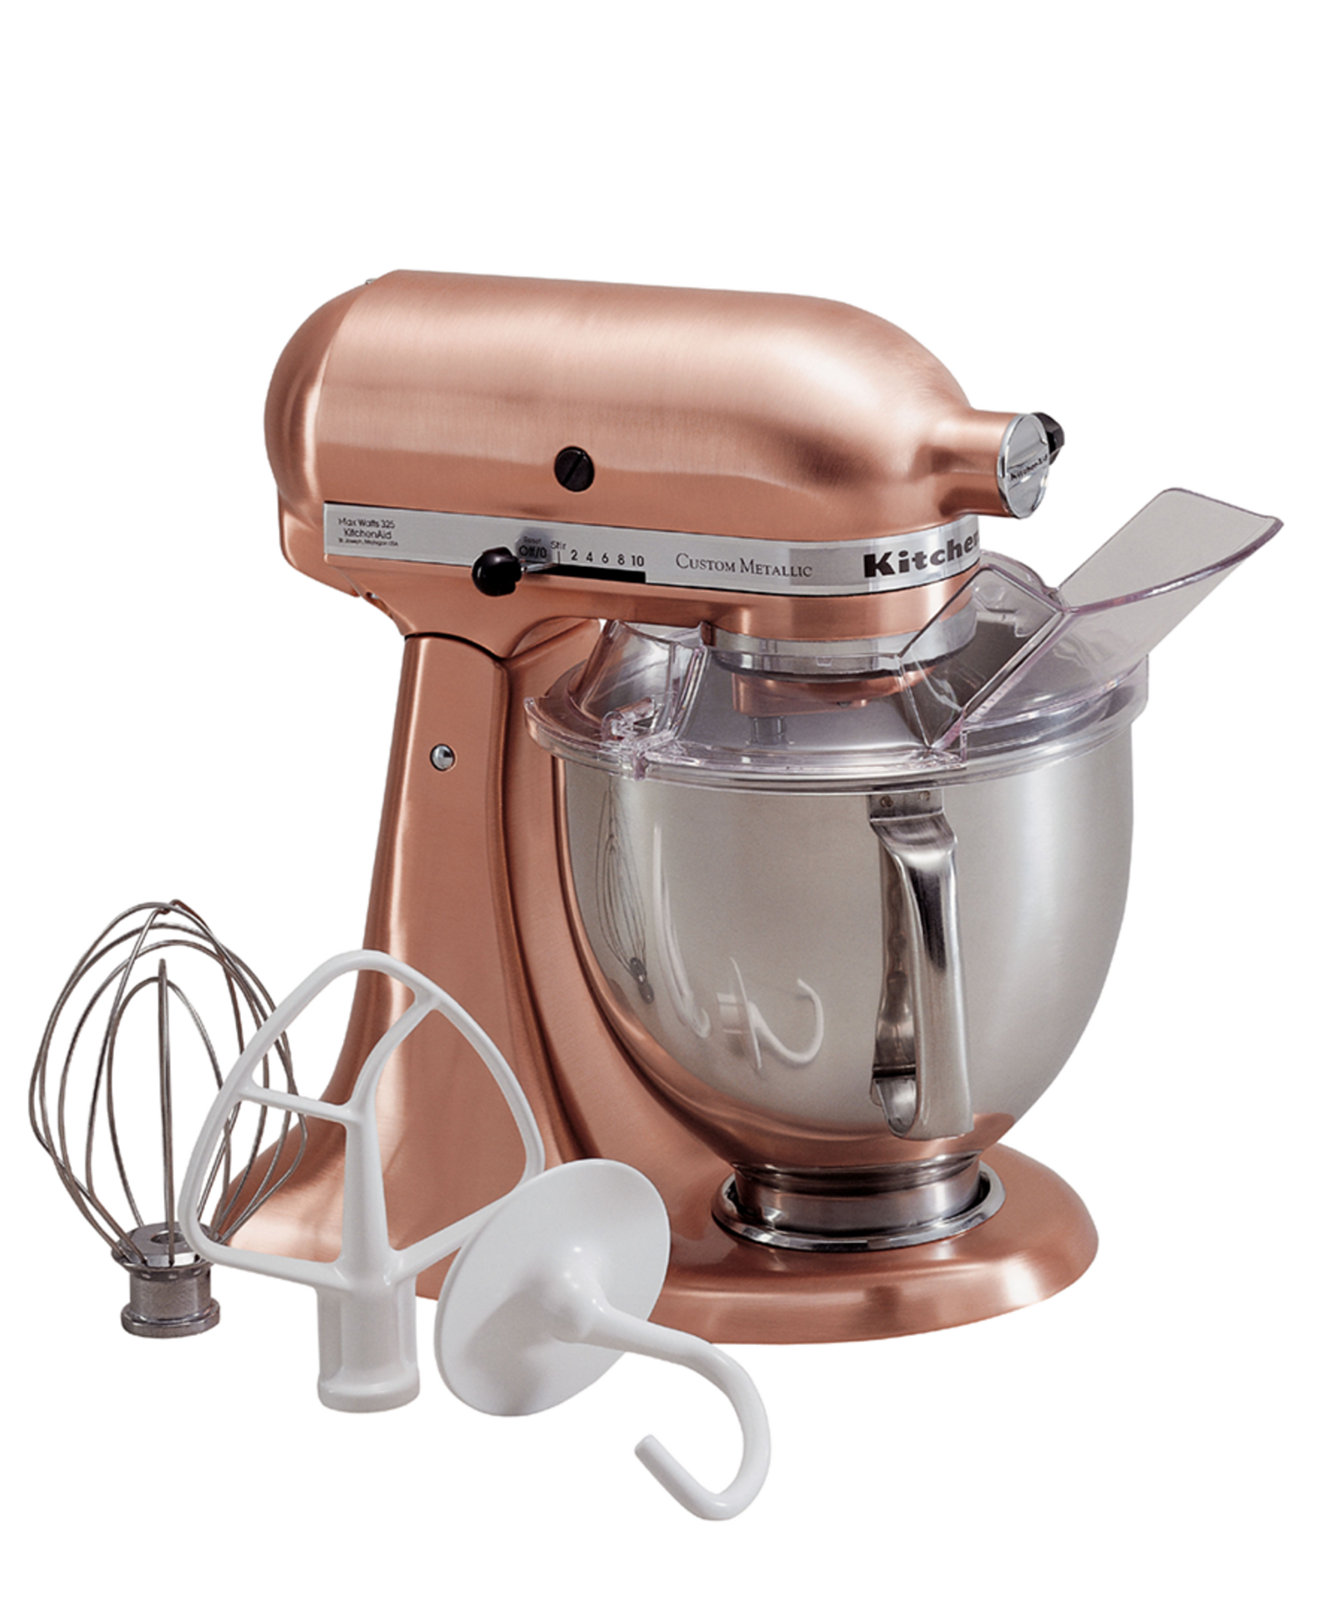 Kitchenaid pink food processor - Kitchenaid Ksm152ps Artisan 5 Qt Custom Metallic Stand Mixer Electrics Kitchen Macy S Bridal And Wedding Registry